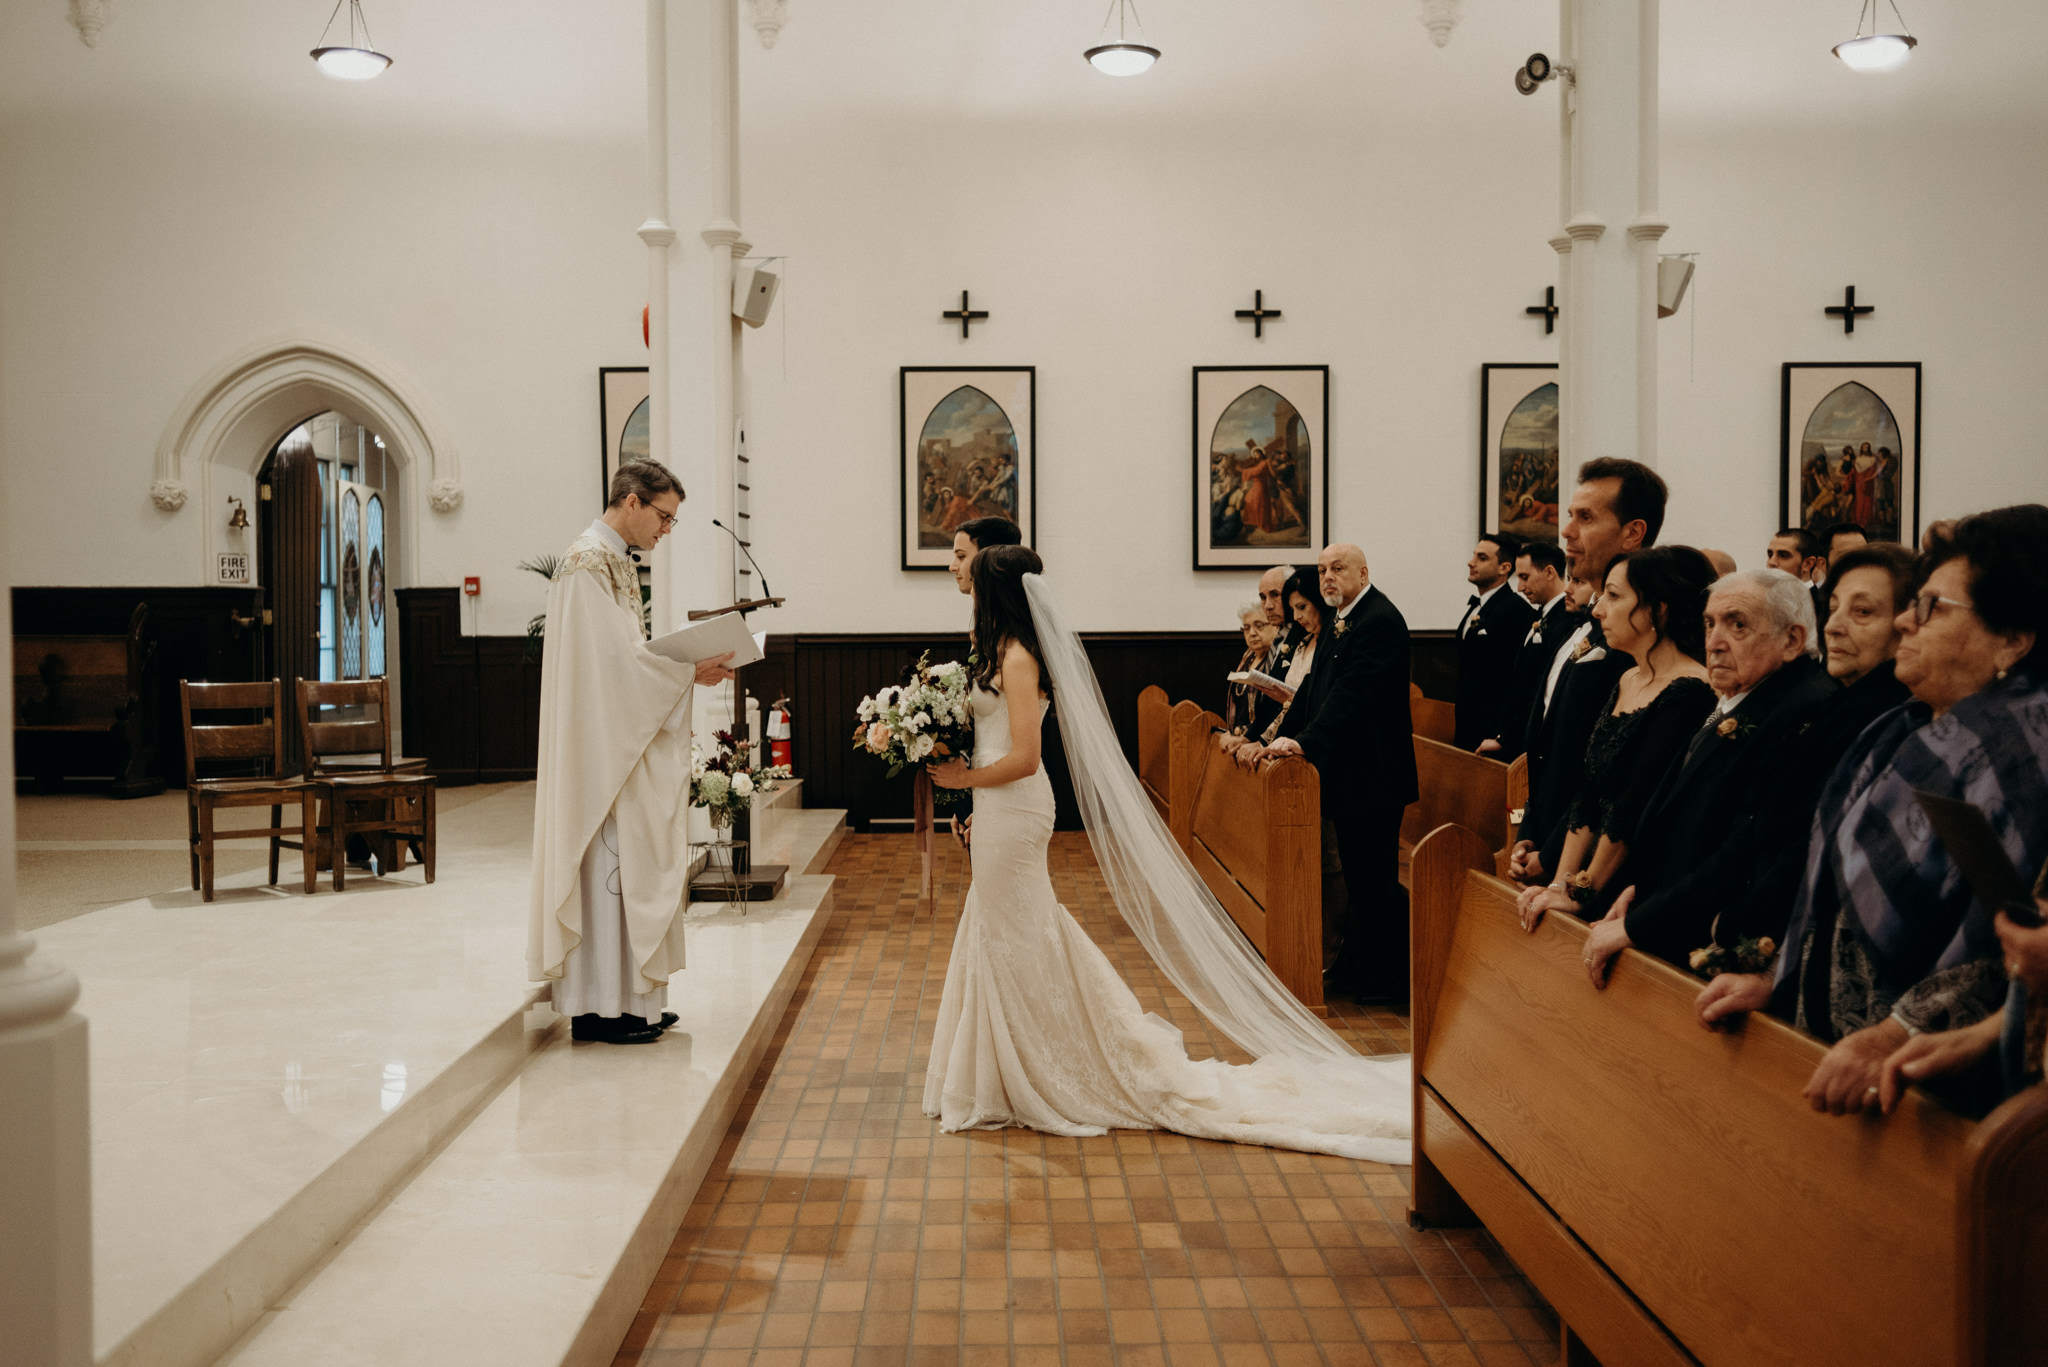 St Basil's Church wedding ceremony